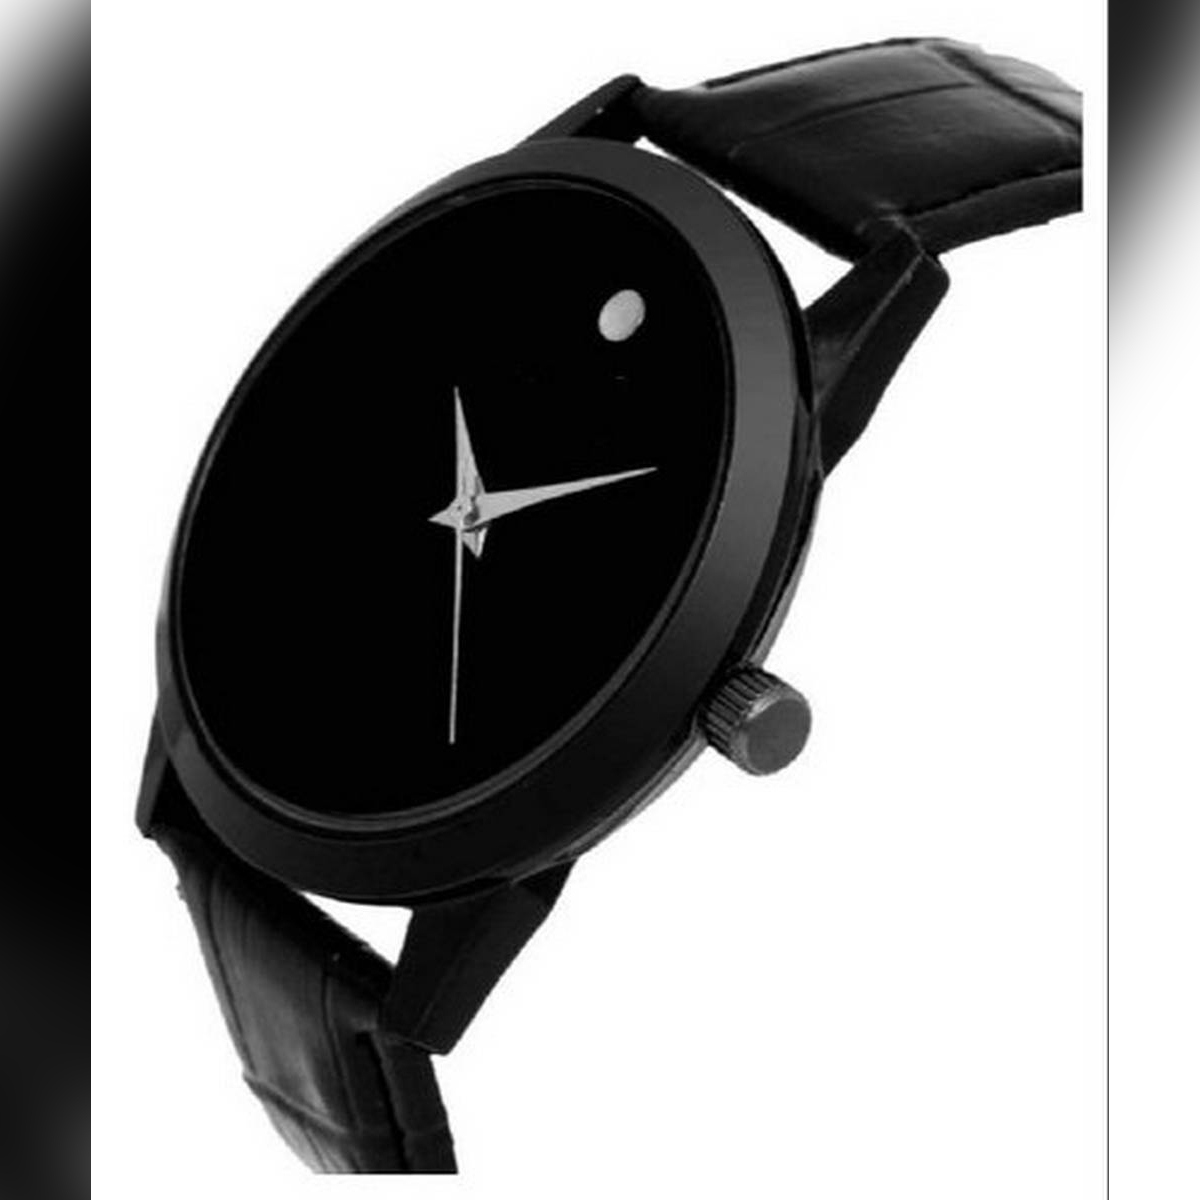 High Quality Square Digital Silicone Sports Watch For Men&Women.